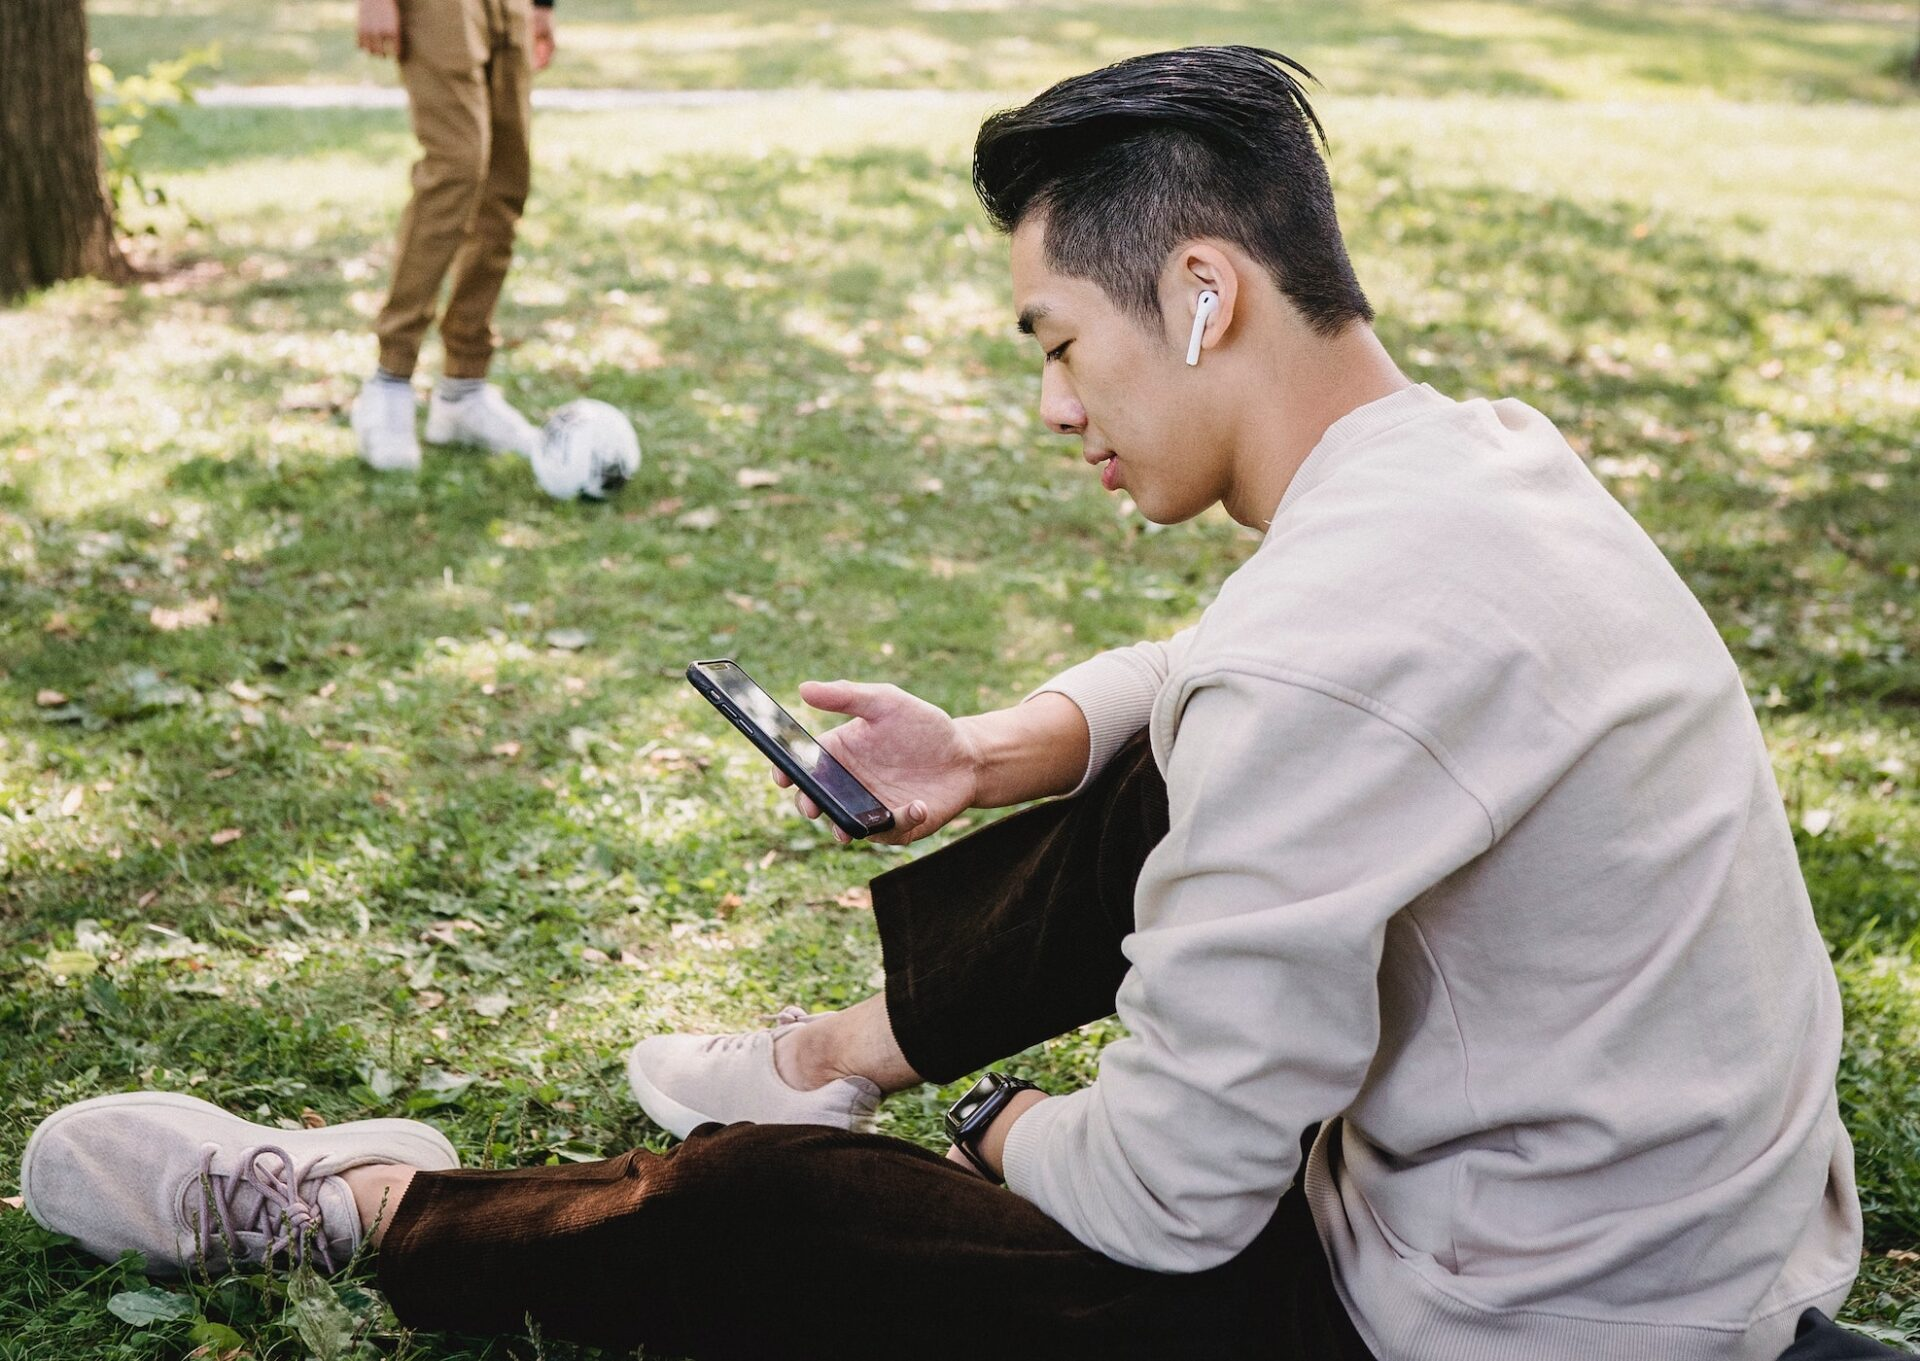 young man sitting on the grass looking at his phone